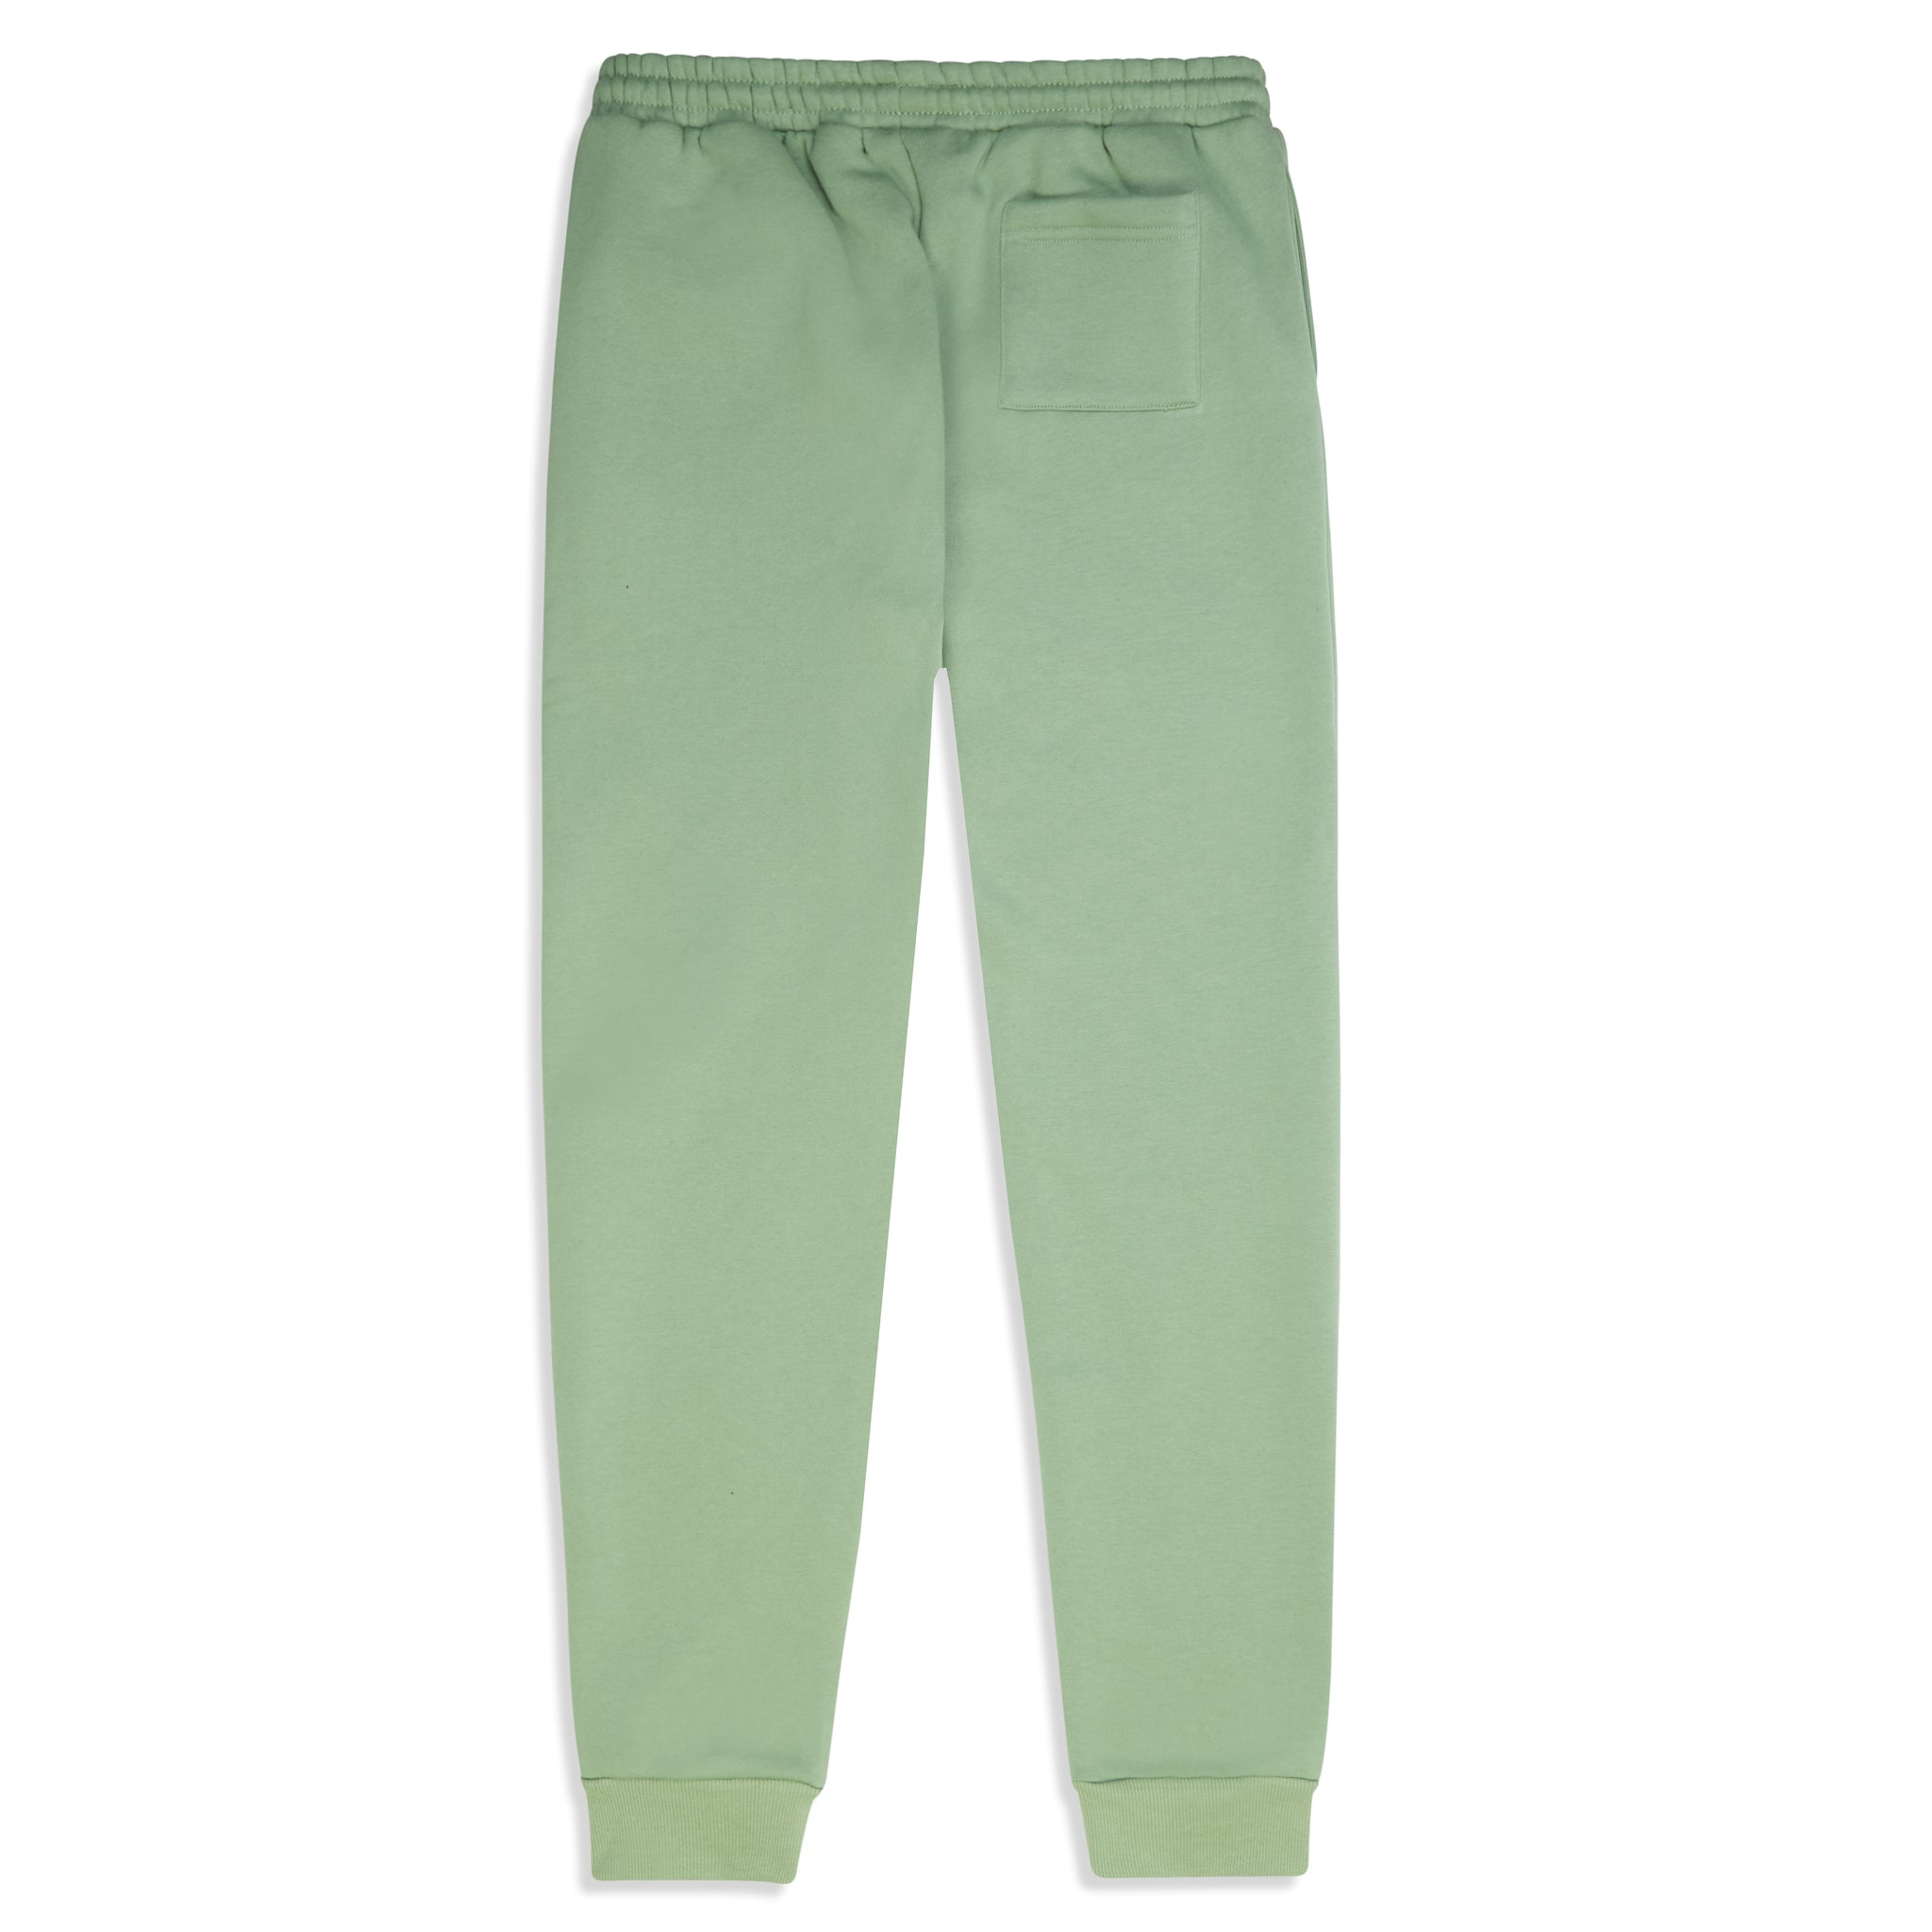 1FIGURES - Pistachio Sweatpants